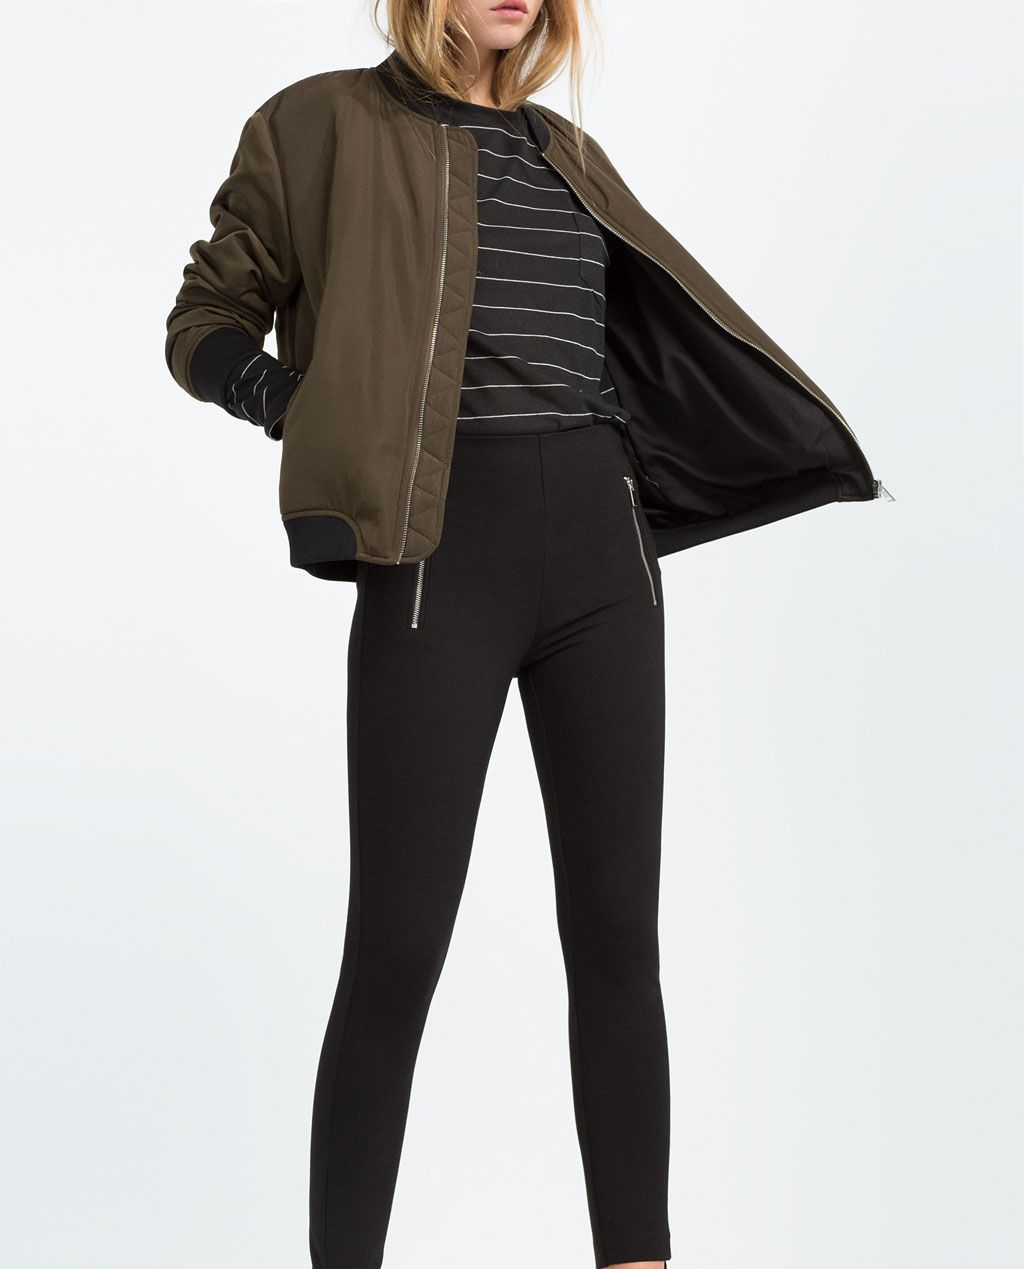 7c24d7e5e8be7 Image 1 of SIDE ZIP LEGGINGS from Zara Zara Women, Trousers Women, Black  Jeans